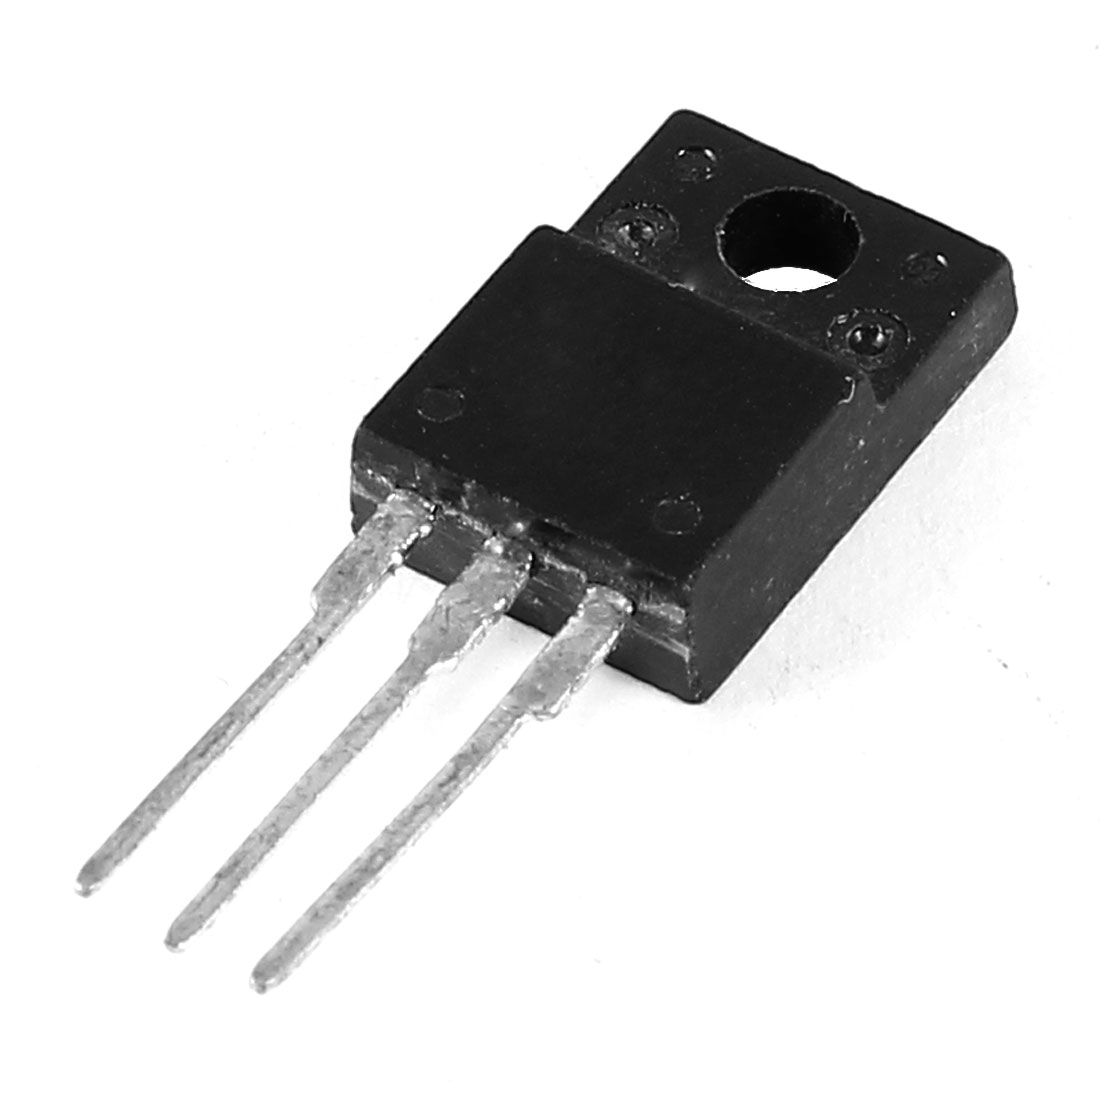 2SK2645 Fast Switching Speed Semiconductor NPN Power Transistor 600V 9A